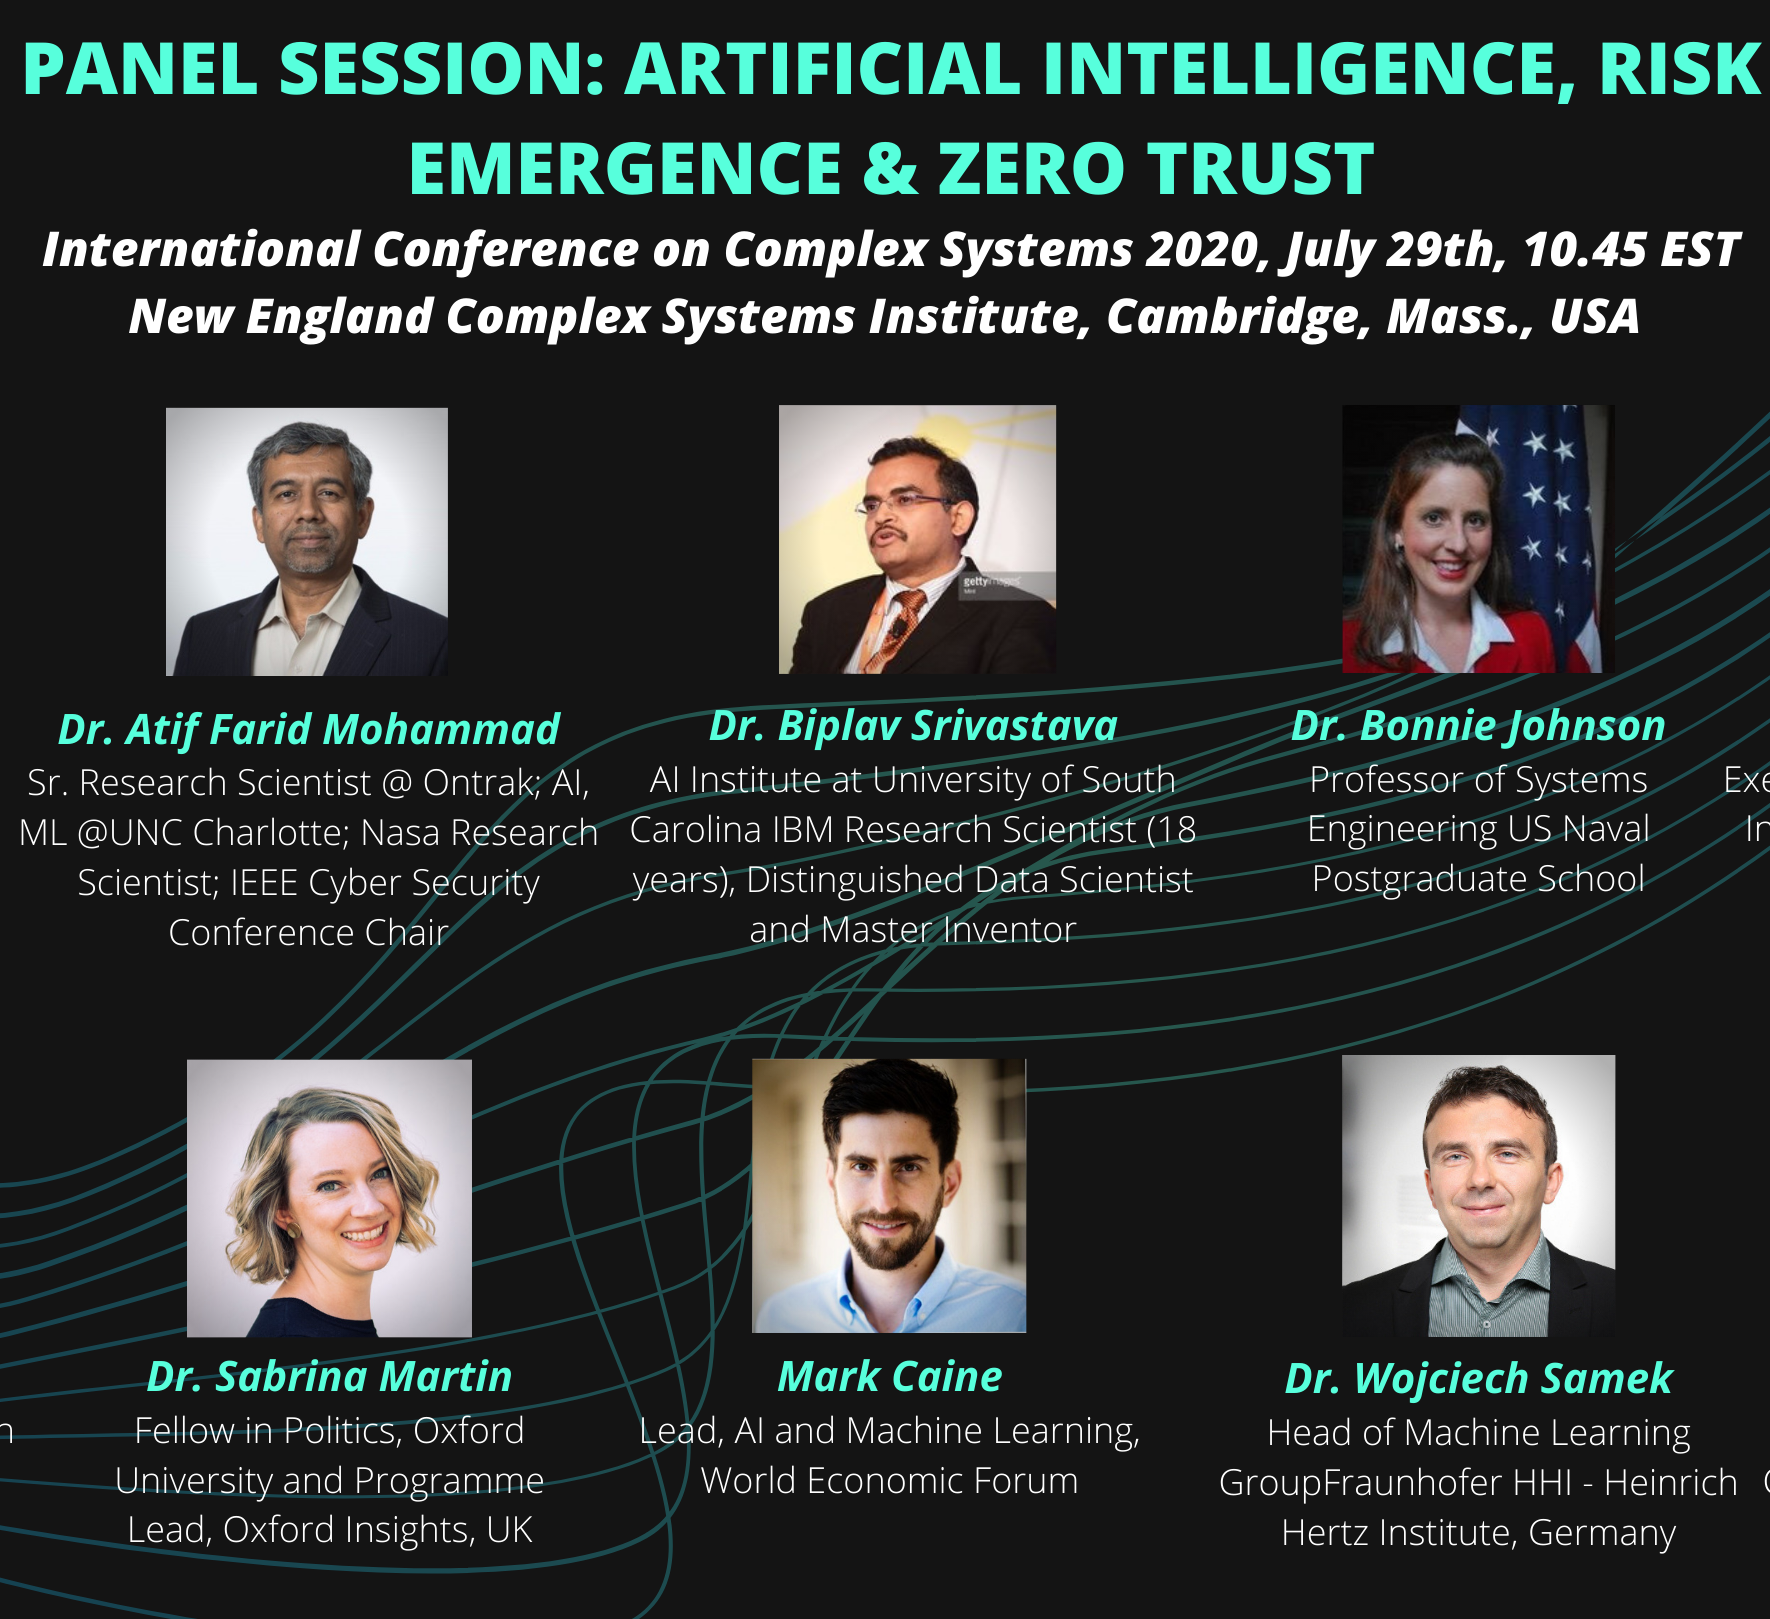 International Conference on Complex Systems Panel Session